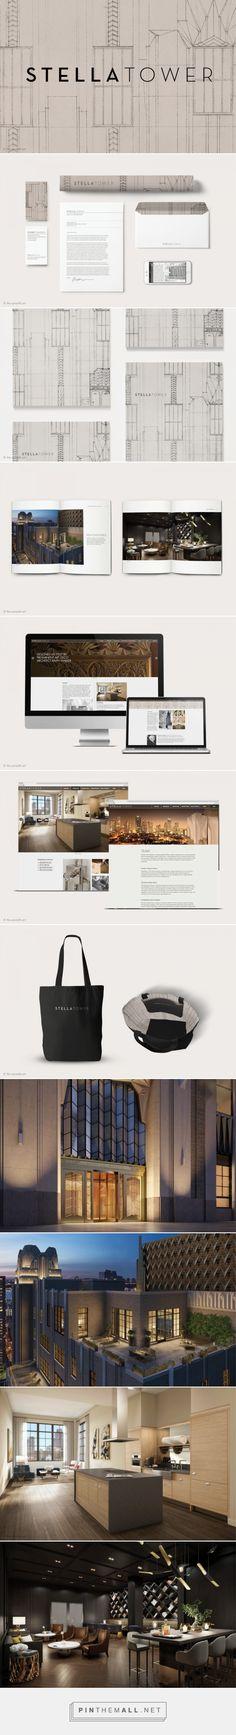 Stella Tower Residential Building Brand Identity by The Seventh Art LLC   Fivestar Branding Agency – Design and Branding Agency & Curated Inspiration Gallery